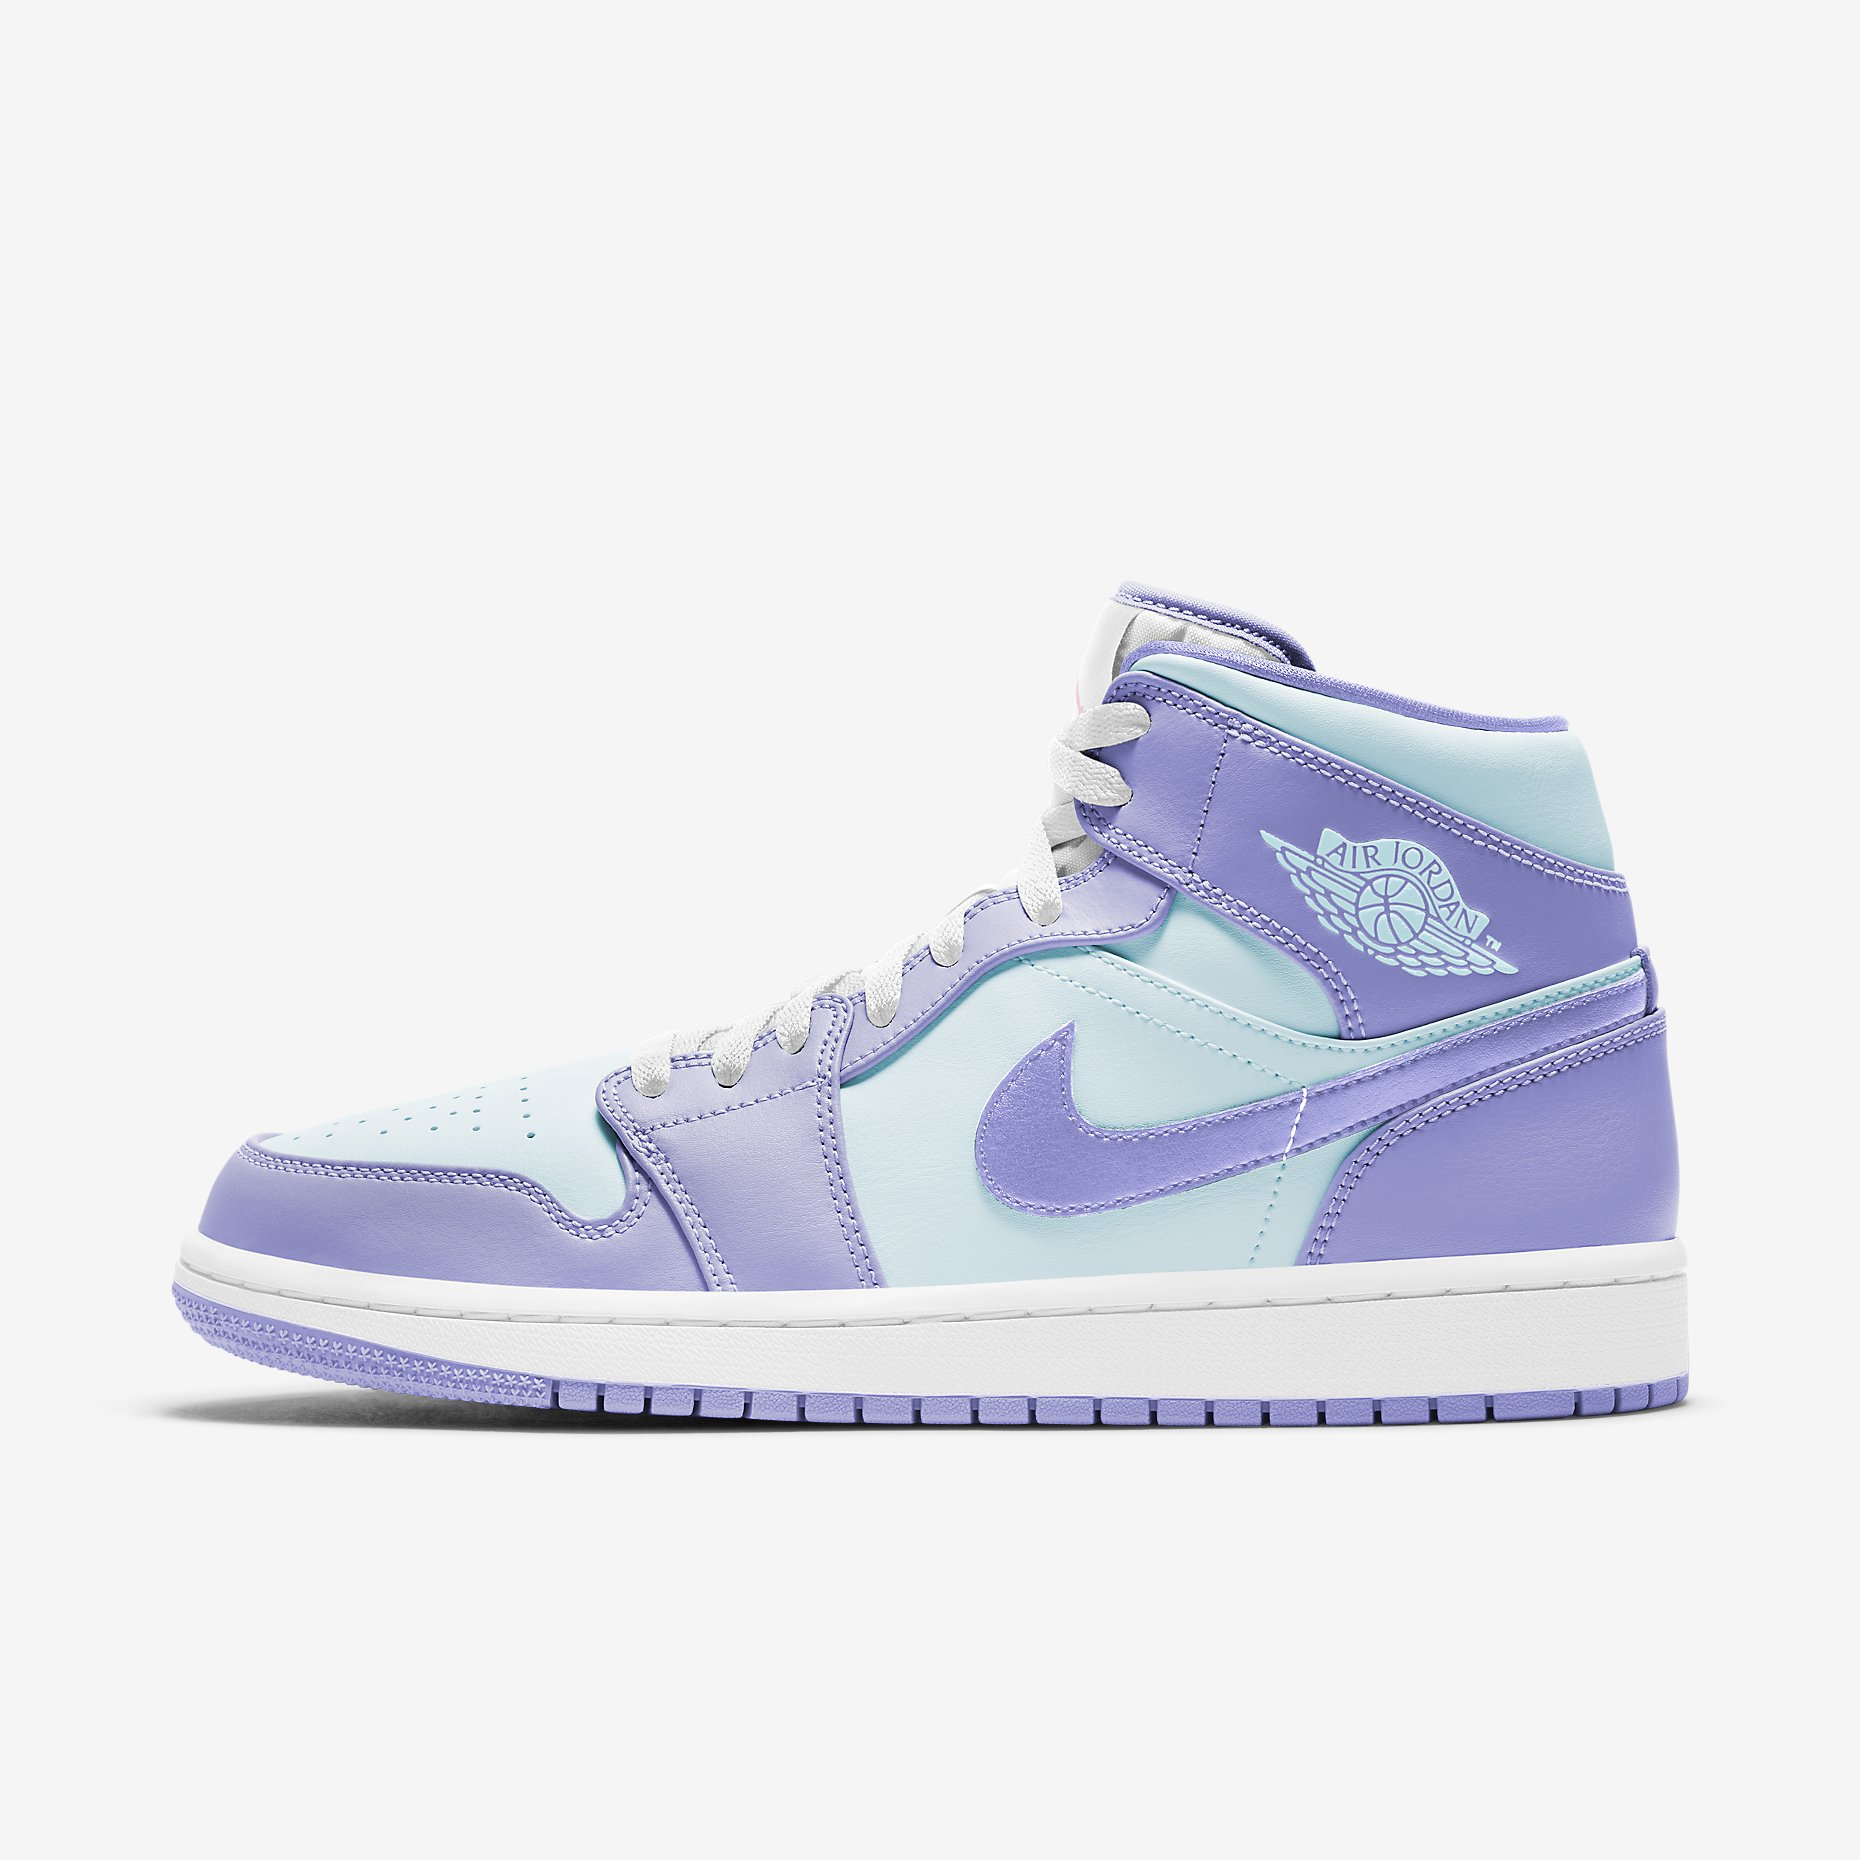 Air Jordan 1 Mid 'Purple Pulse Glacier Blue'}